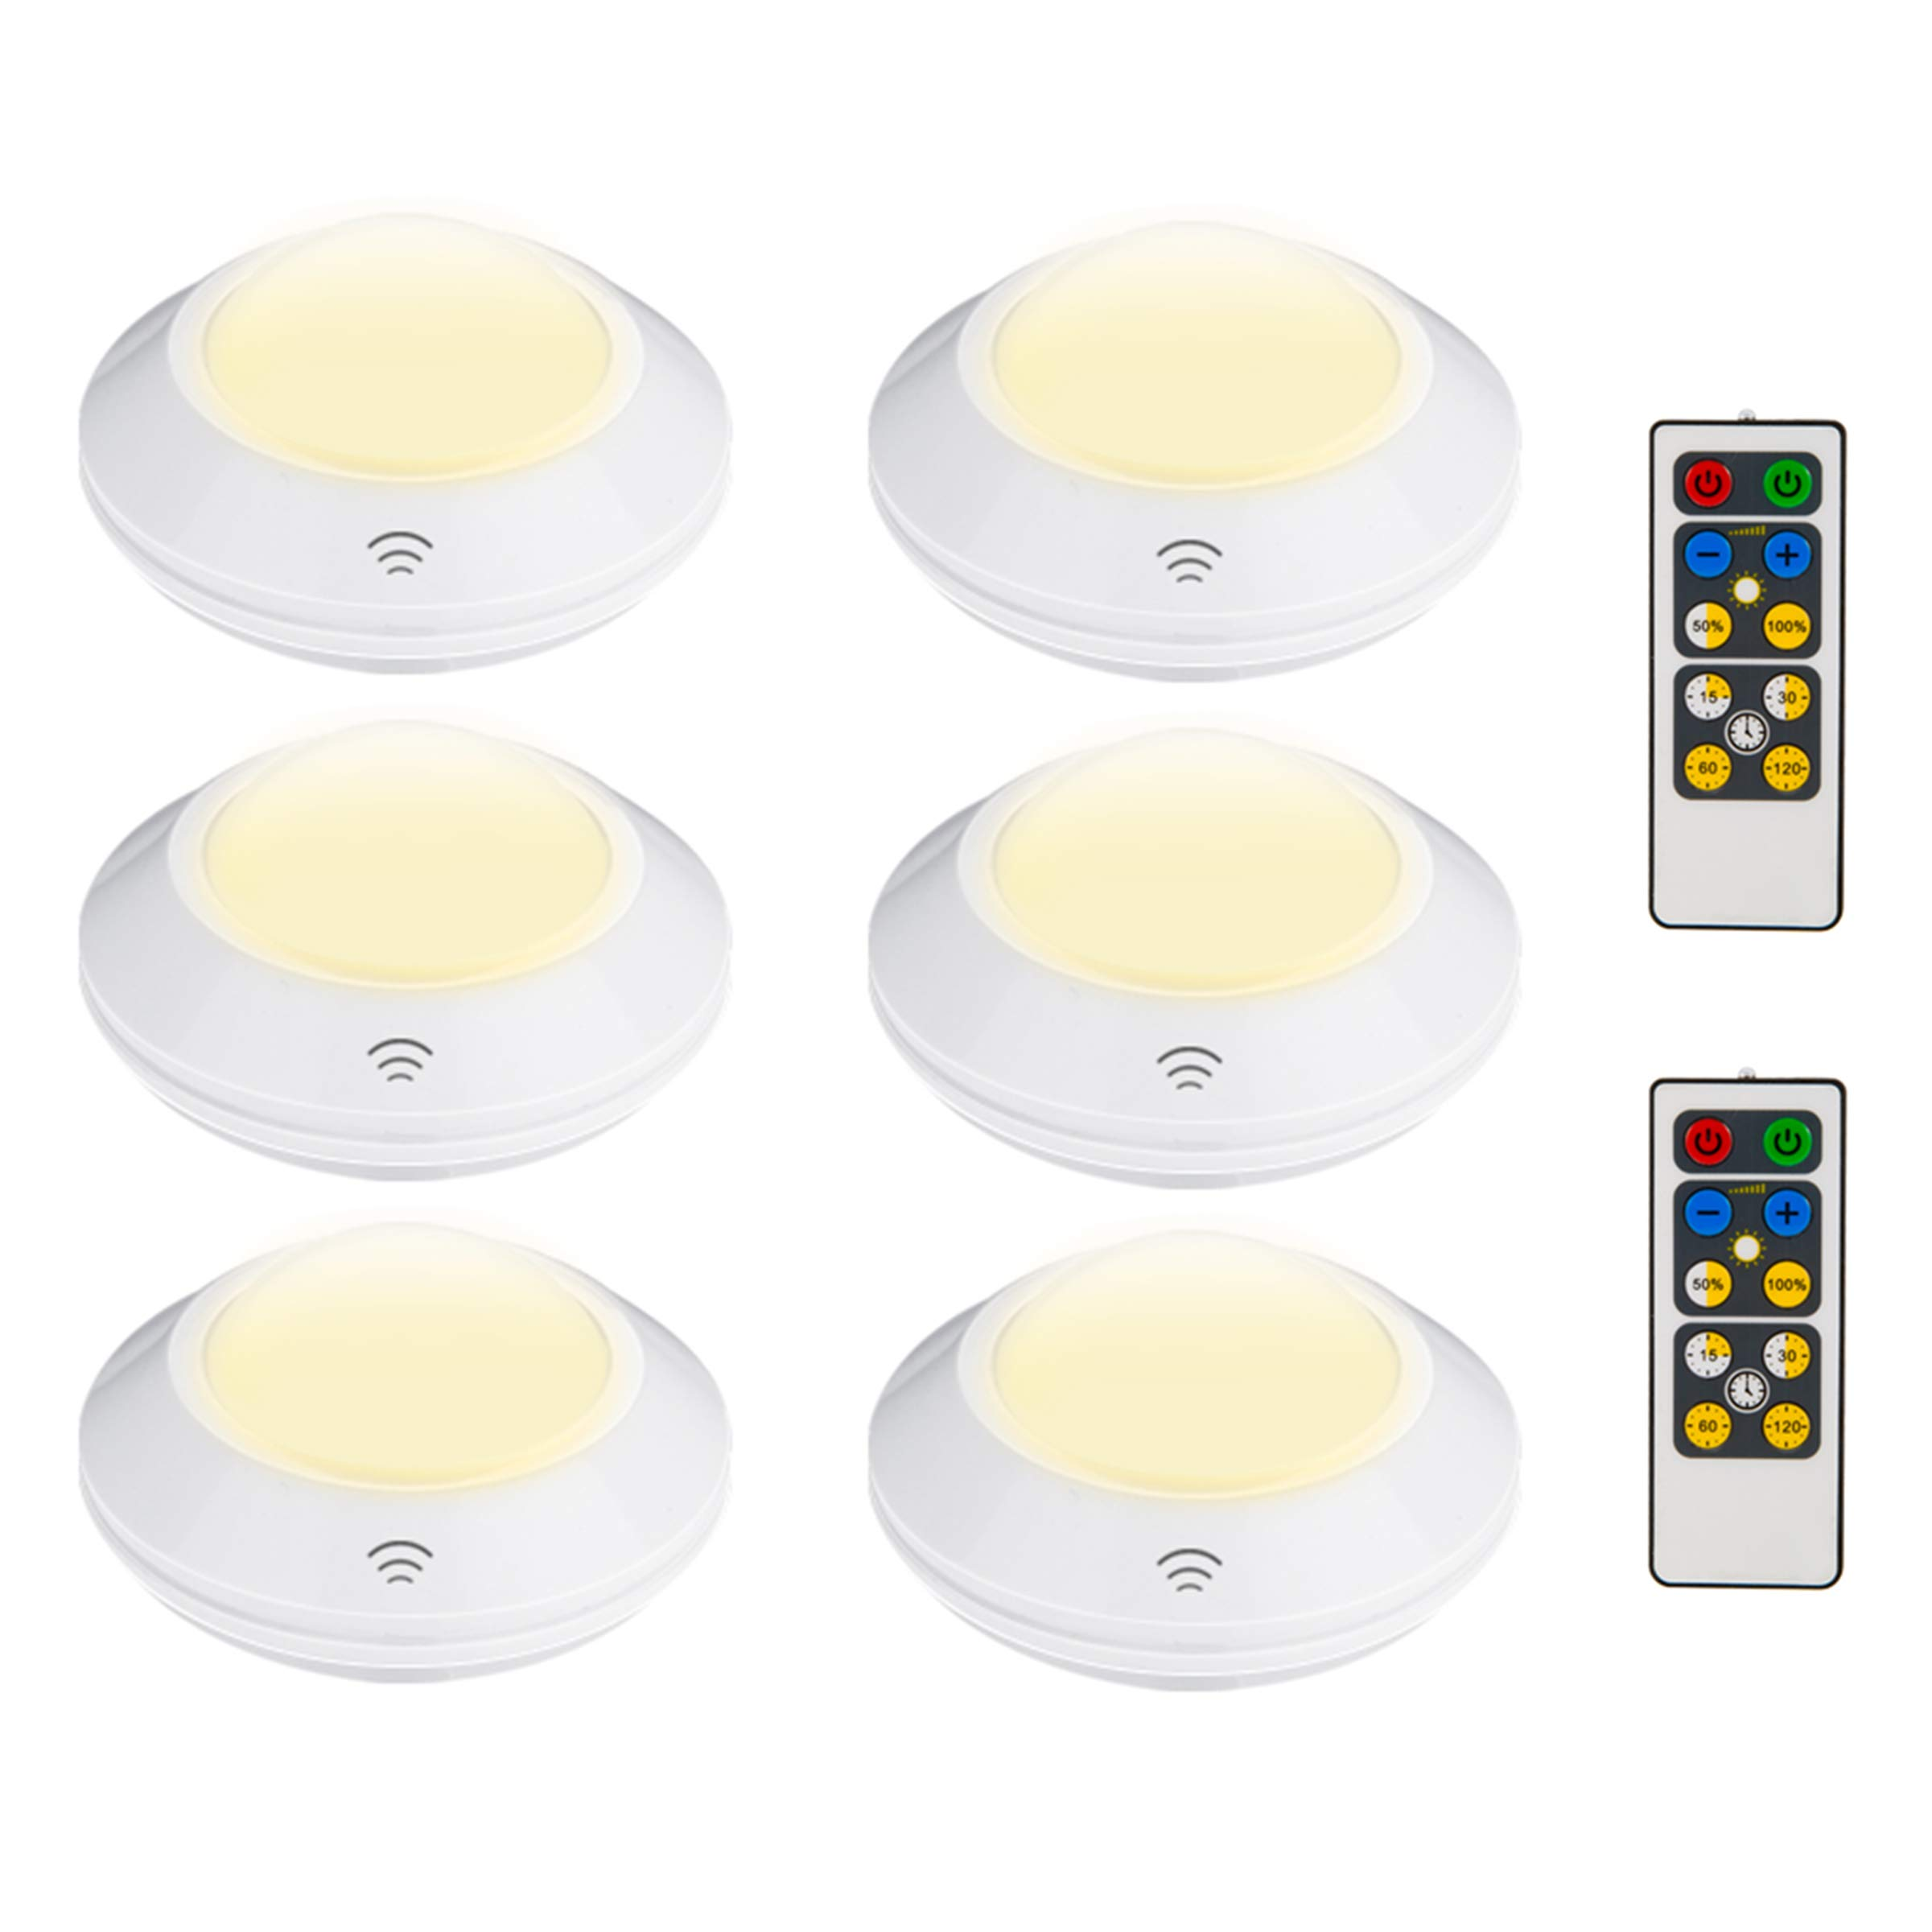 HONWELL Wireless LED Cabinet Lights Remote Controlled Puck Lights with Brightness Dimmable and Timer Preset AA Battery Powered Closet Lights Stick on Anywhere Kitchen Under Cabinet Lighting, 6PACK